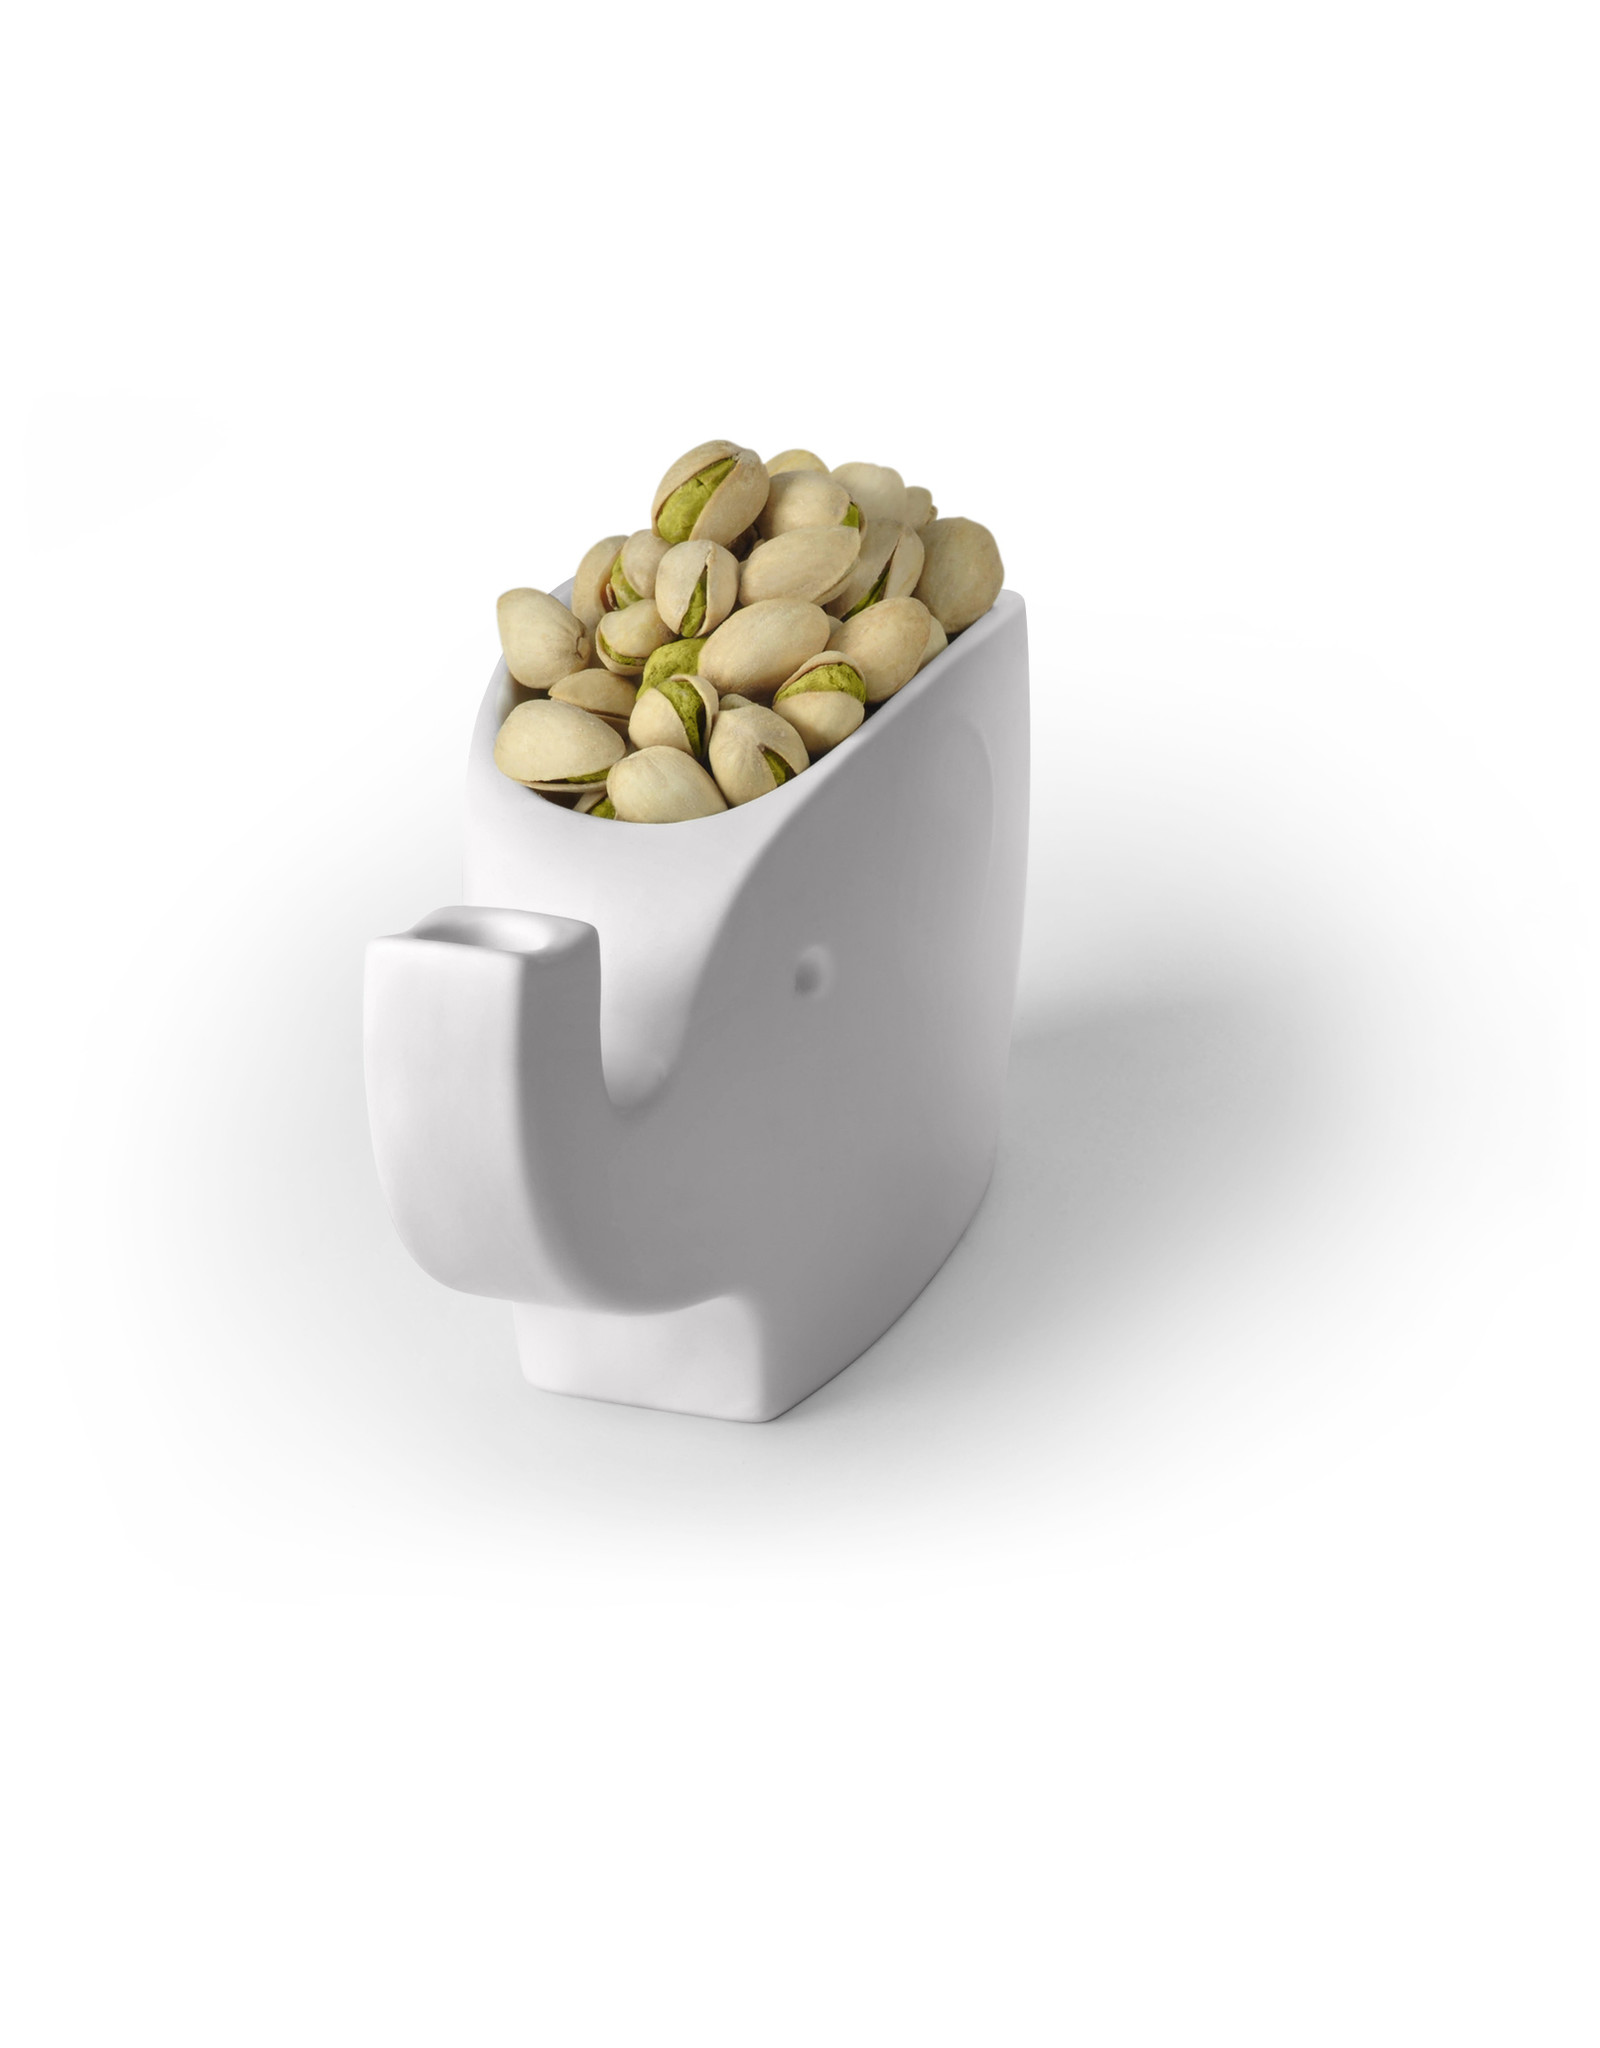 Fred & Friends Fred Oliver Tidbit Bowl - Olive & Nut Bowl